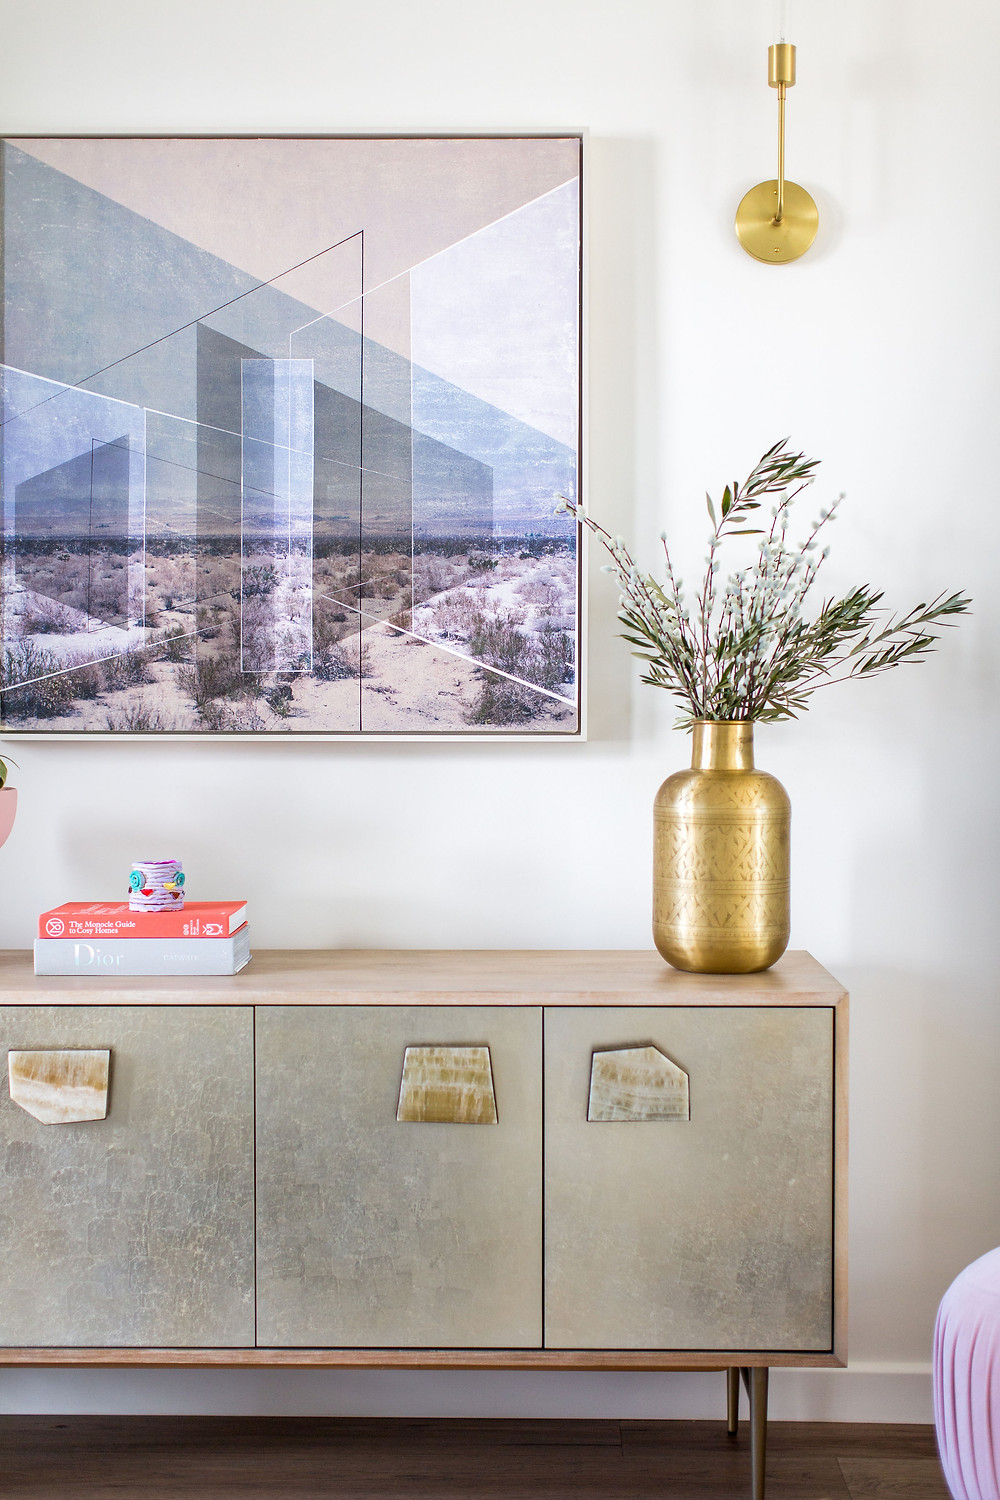 Vignette of vase and art over console cabinet styled by Veneer Designs